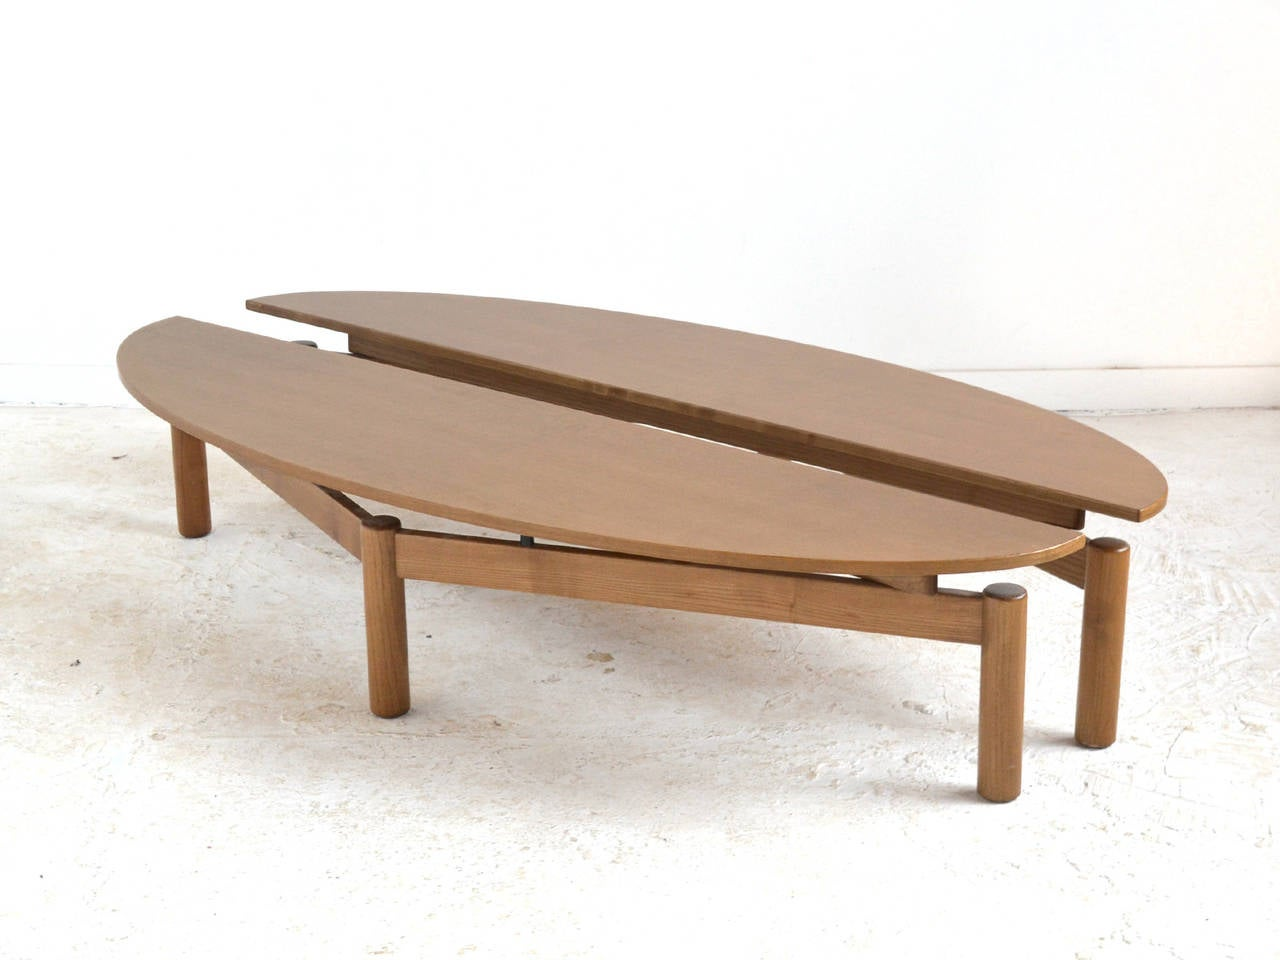 Vico Magistretti Sinbad Coffee Table By Cassina For Sale At 1stdibs